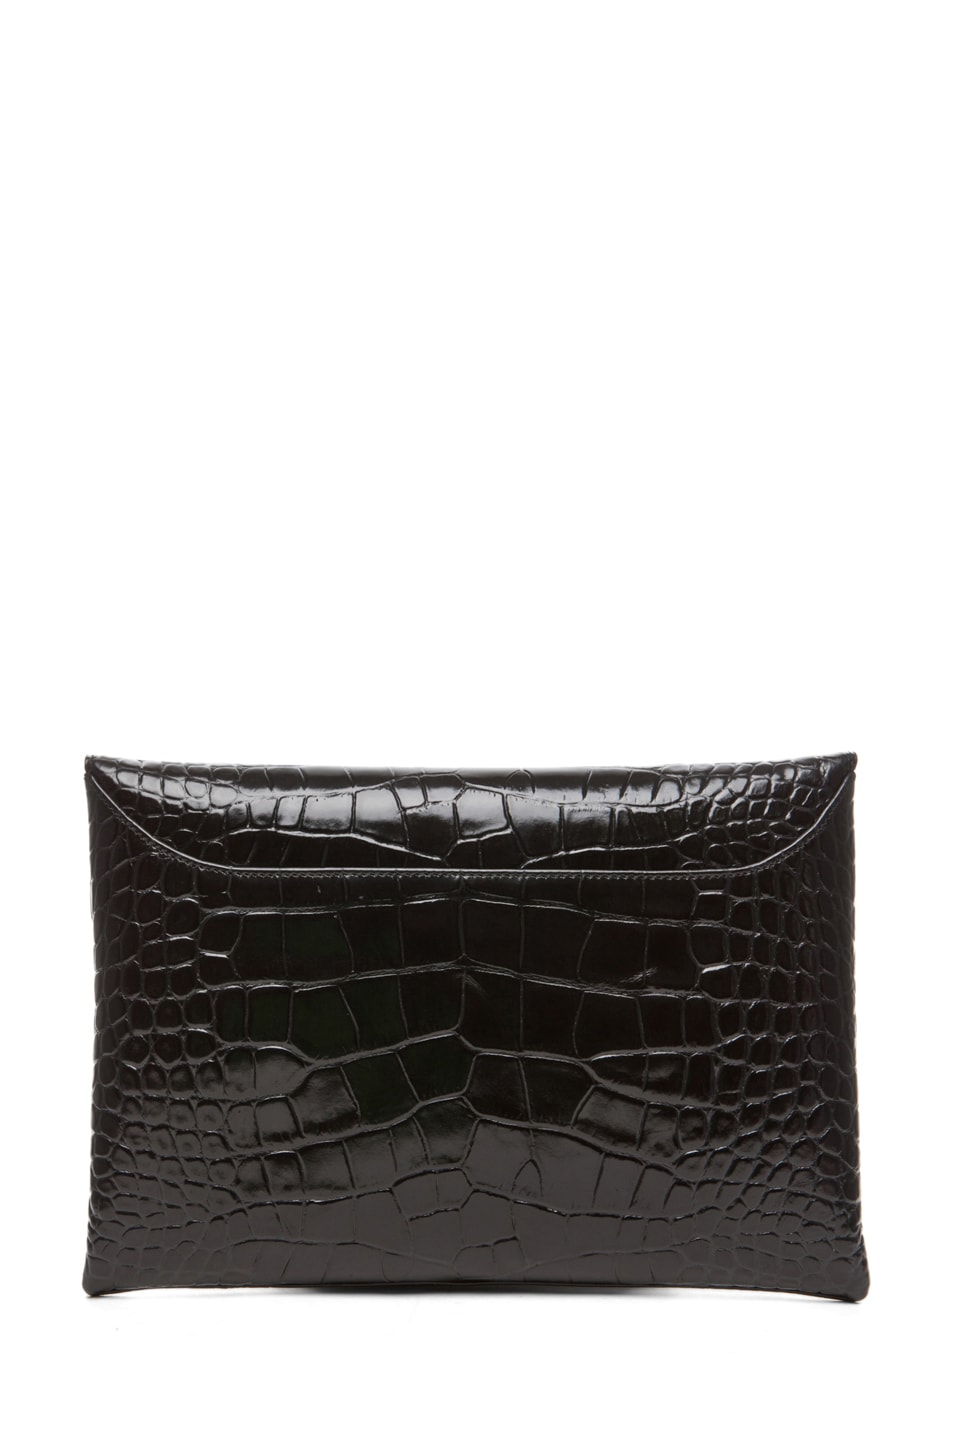 Image 2 of GIVENCHY Antigona Croc Envelope Clutch in Black